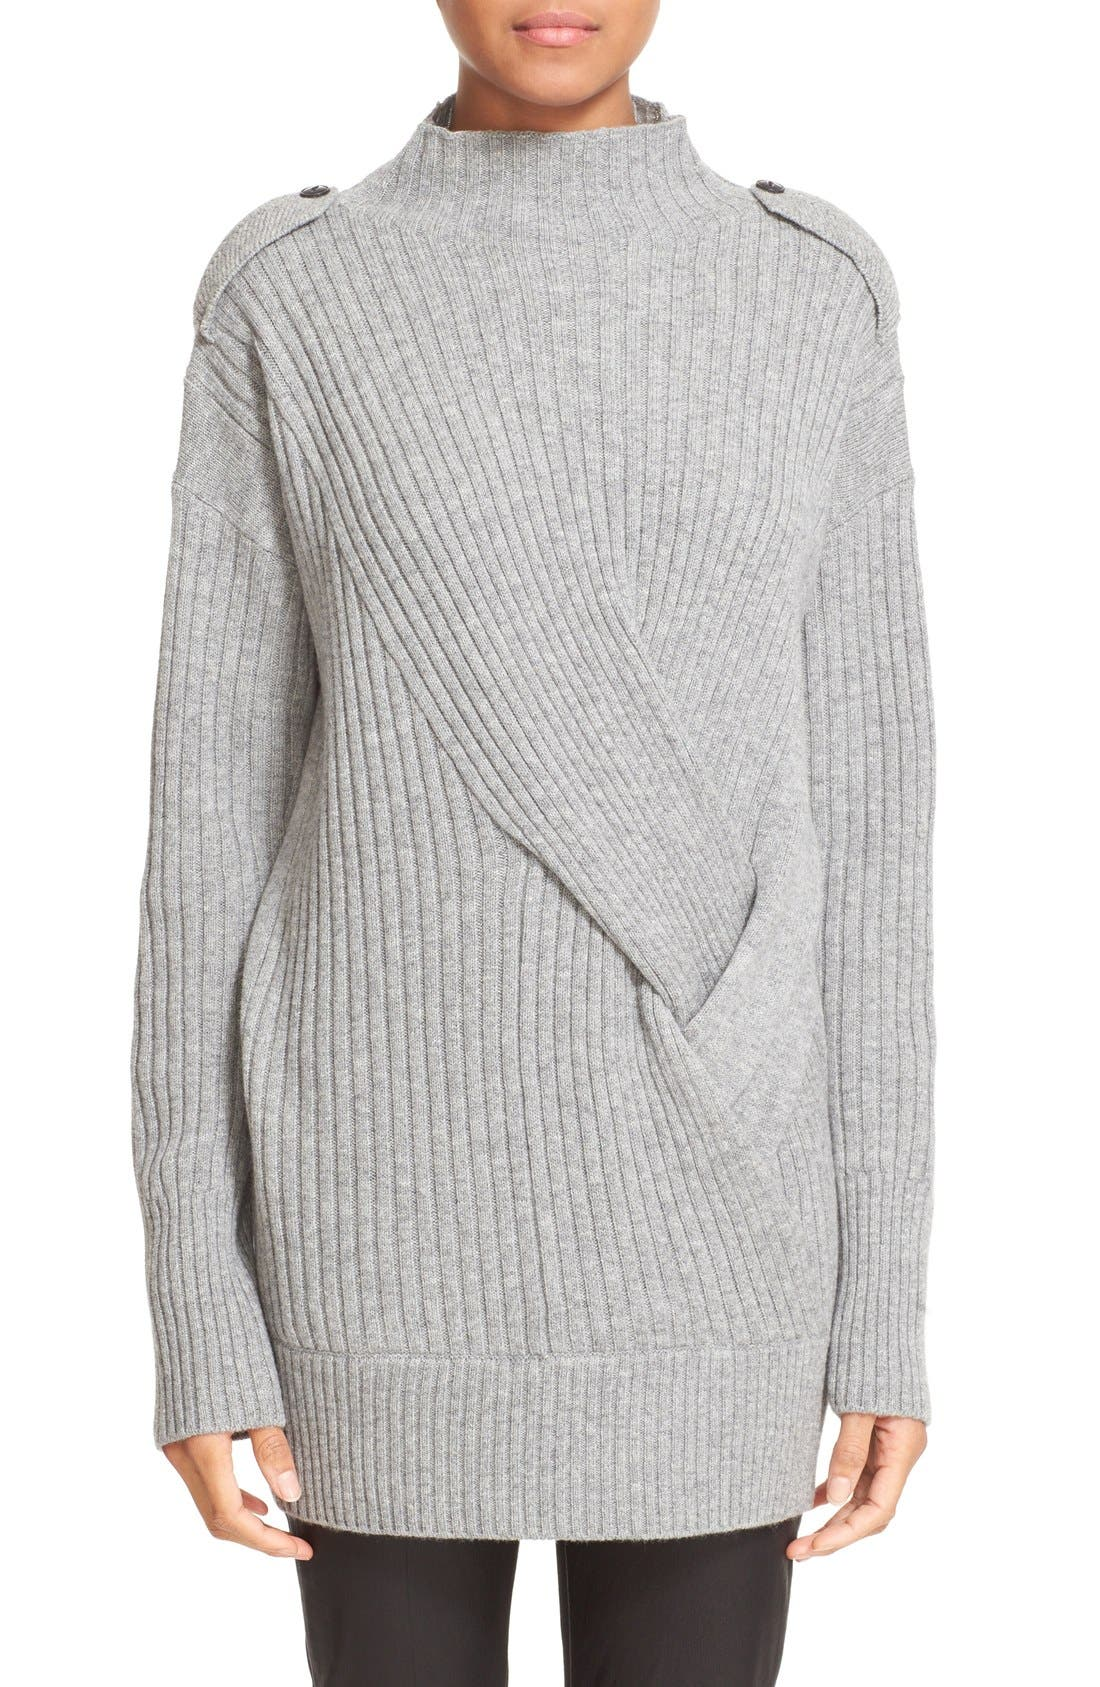 Alternate Image 1 Selected - rag & bone 'Dale' Merino Wool Turtleneck Sweater